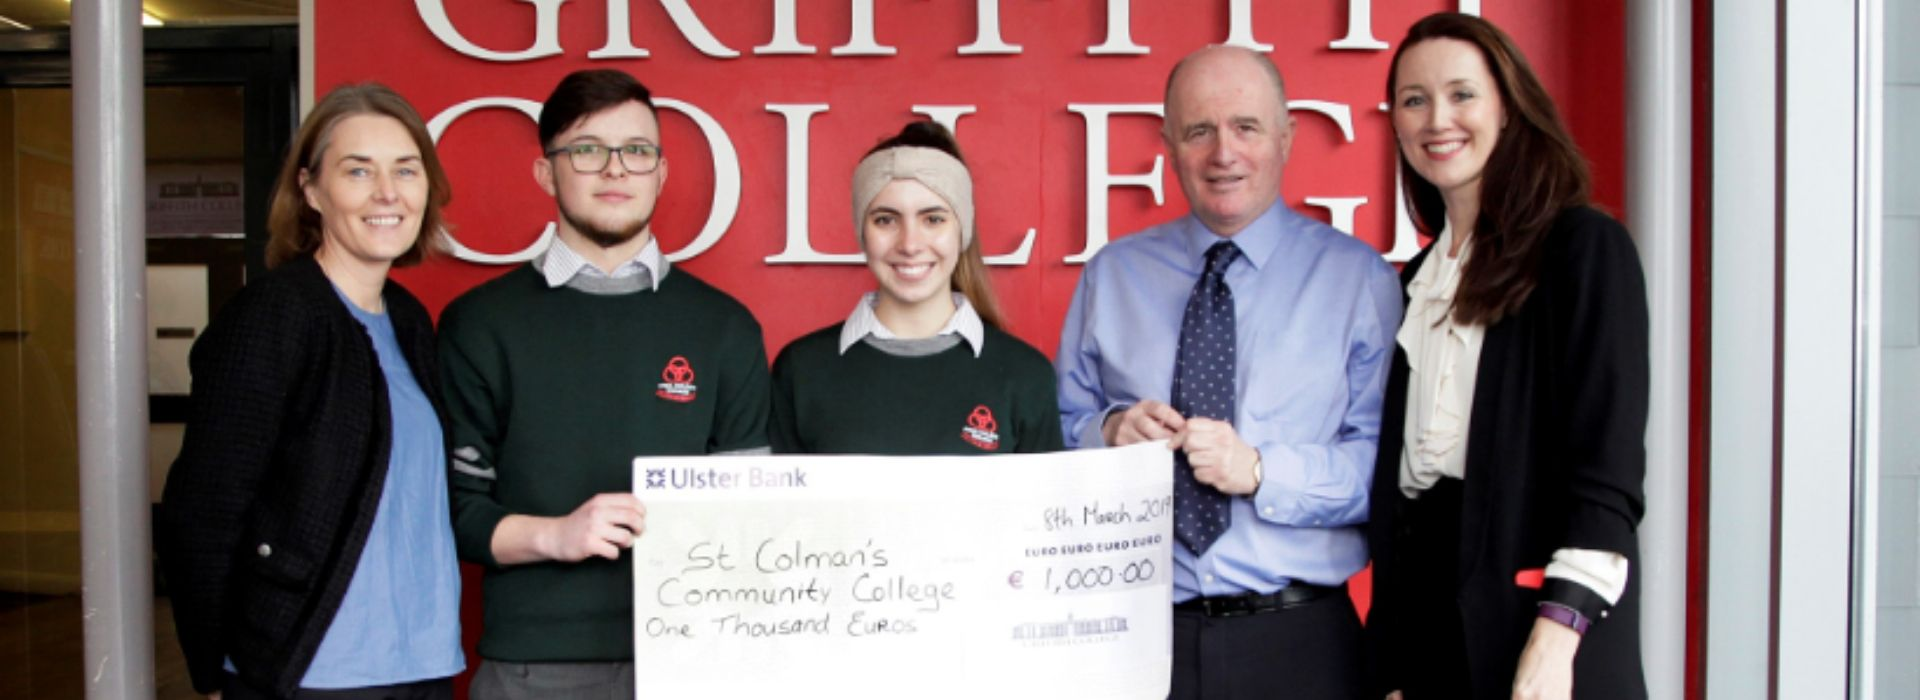 Presentation of a bursary cheque to one of the winning schools